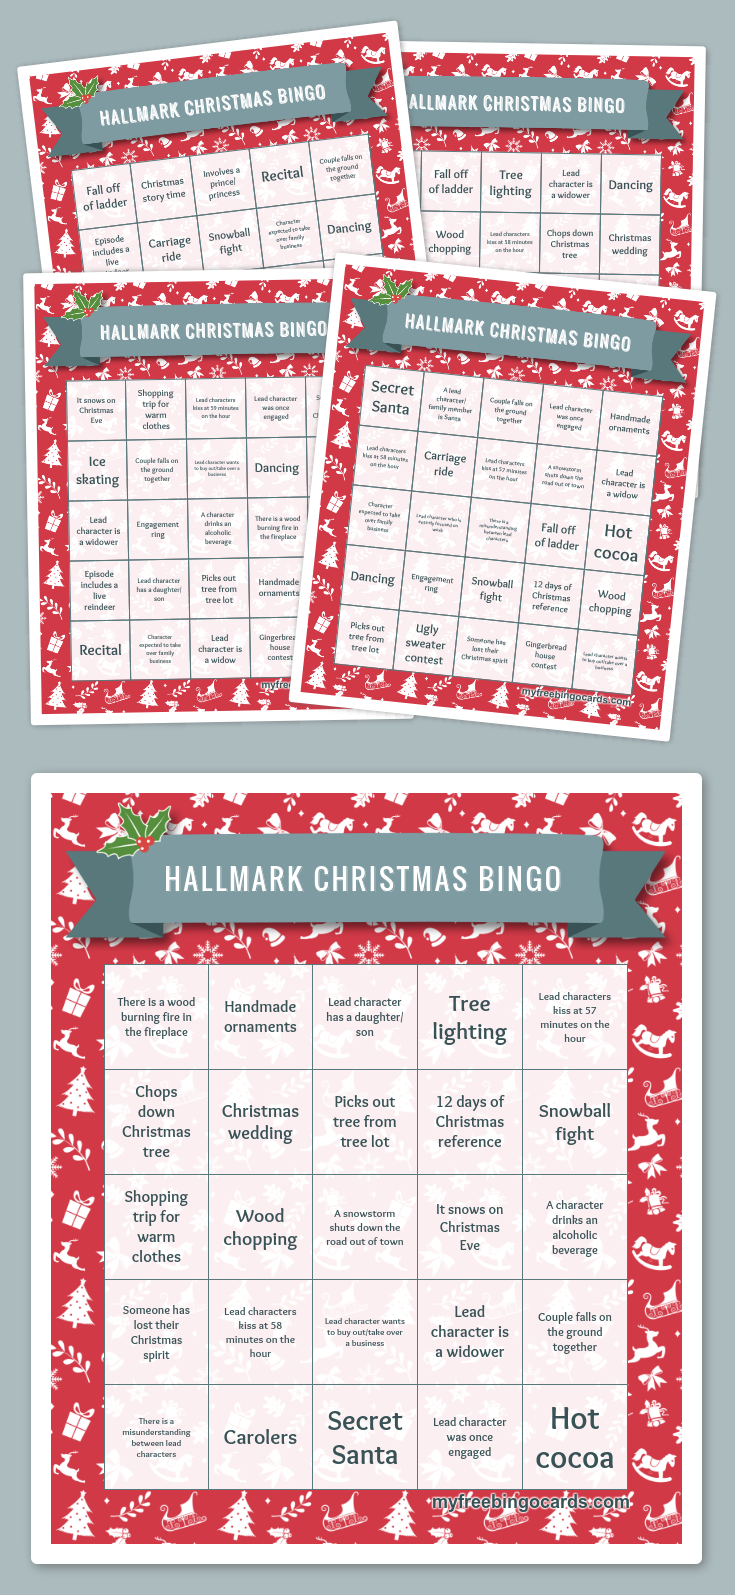 Hallmark Christmas Tablets 2020 Play Hallmark Christmas Bingo with your friends for free on your